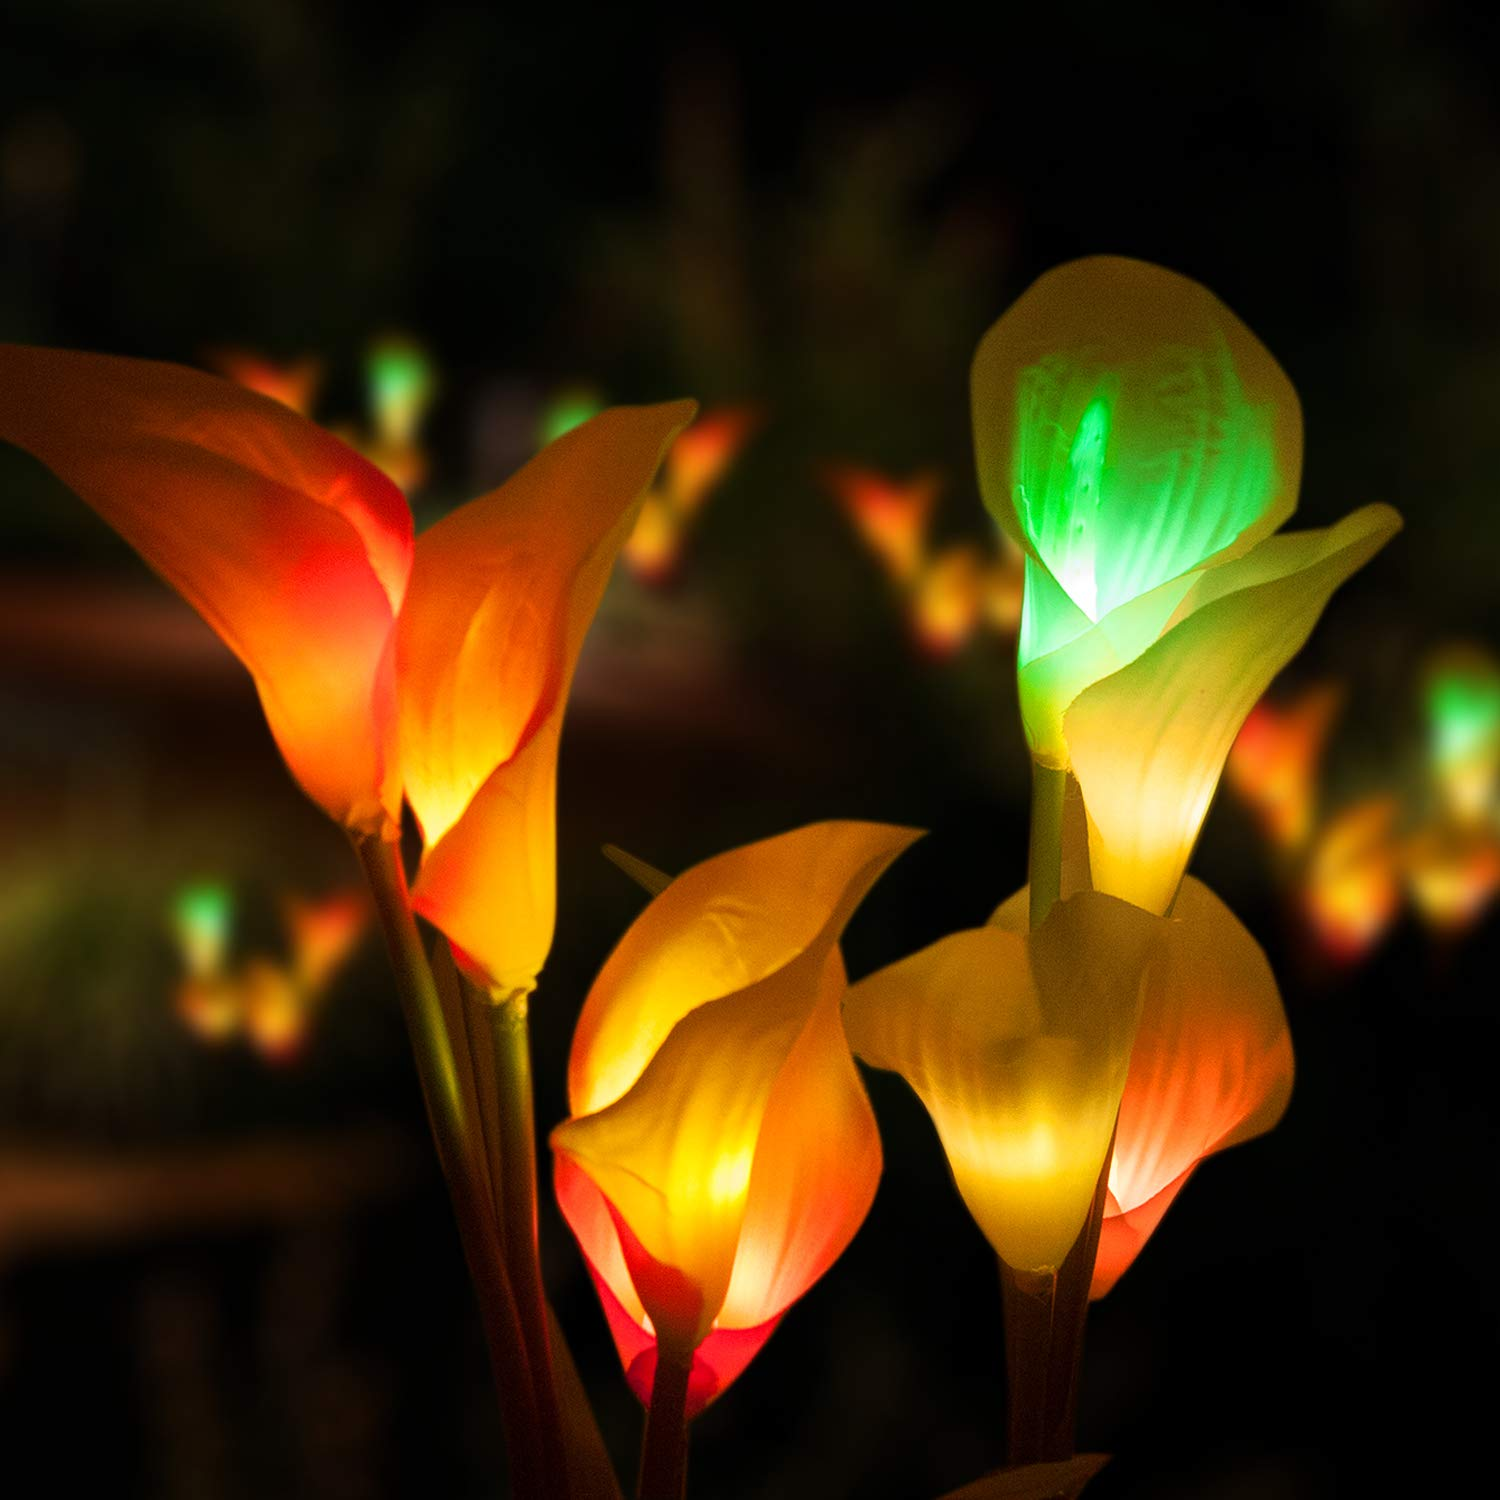 Marcoah Upgraded Solar Flower Lights - Outdoor Waterproof LED Flowers for Garden, Path, Landscape, Patio, and Lawn (Calla Lily, Yellow and White) - 2 Pack